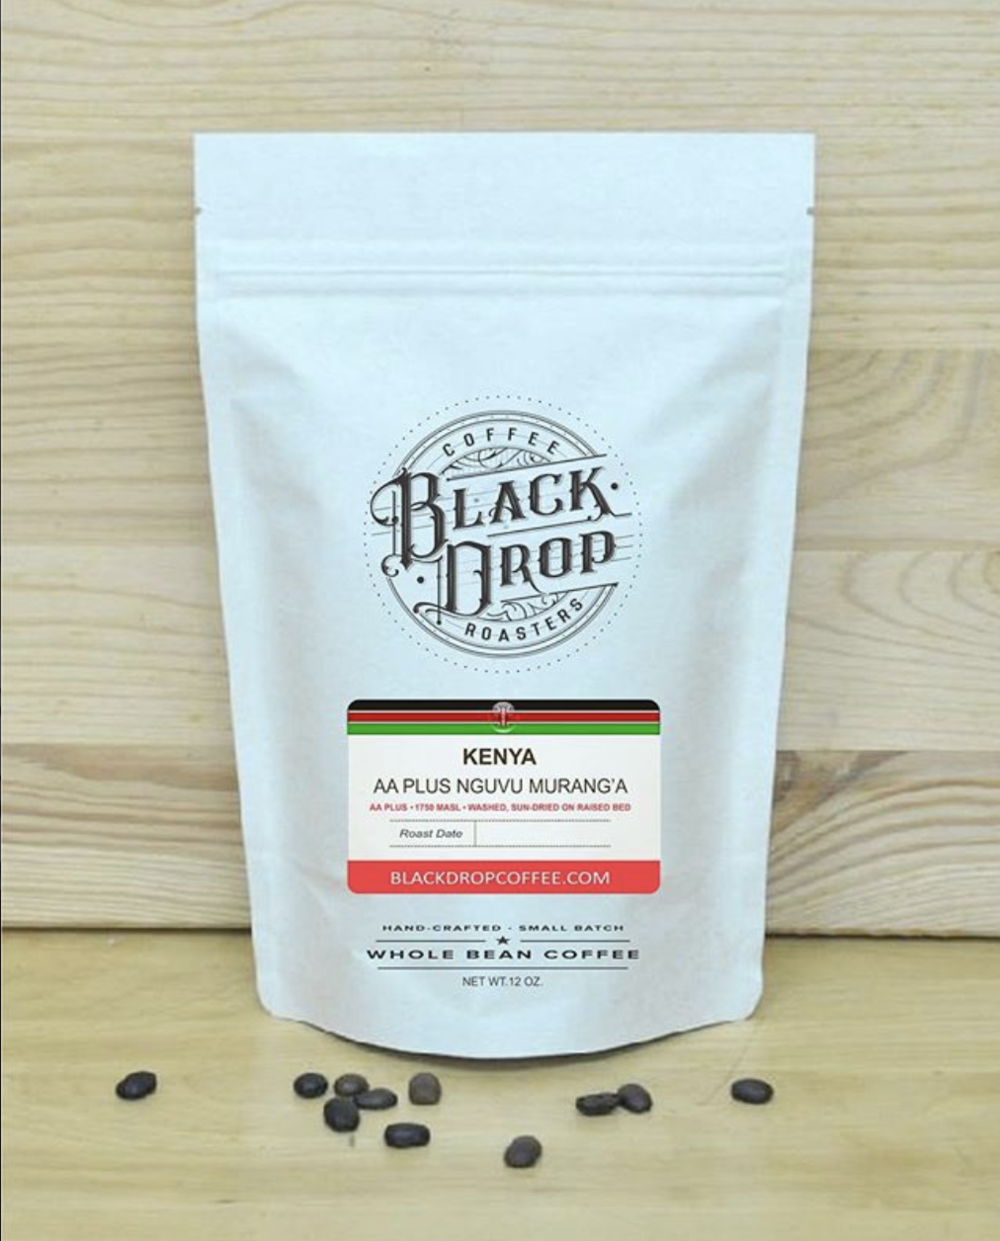 For The Go-Getter - For the ambitious changemaker set on building a better world, fire up their day with a subscription to Black Drop's Coffee Club. This cool coffee company checks all the boxes – their blends are fair trade, certified organic, and boast the Rainforest Alliance Seal of Approval.